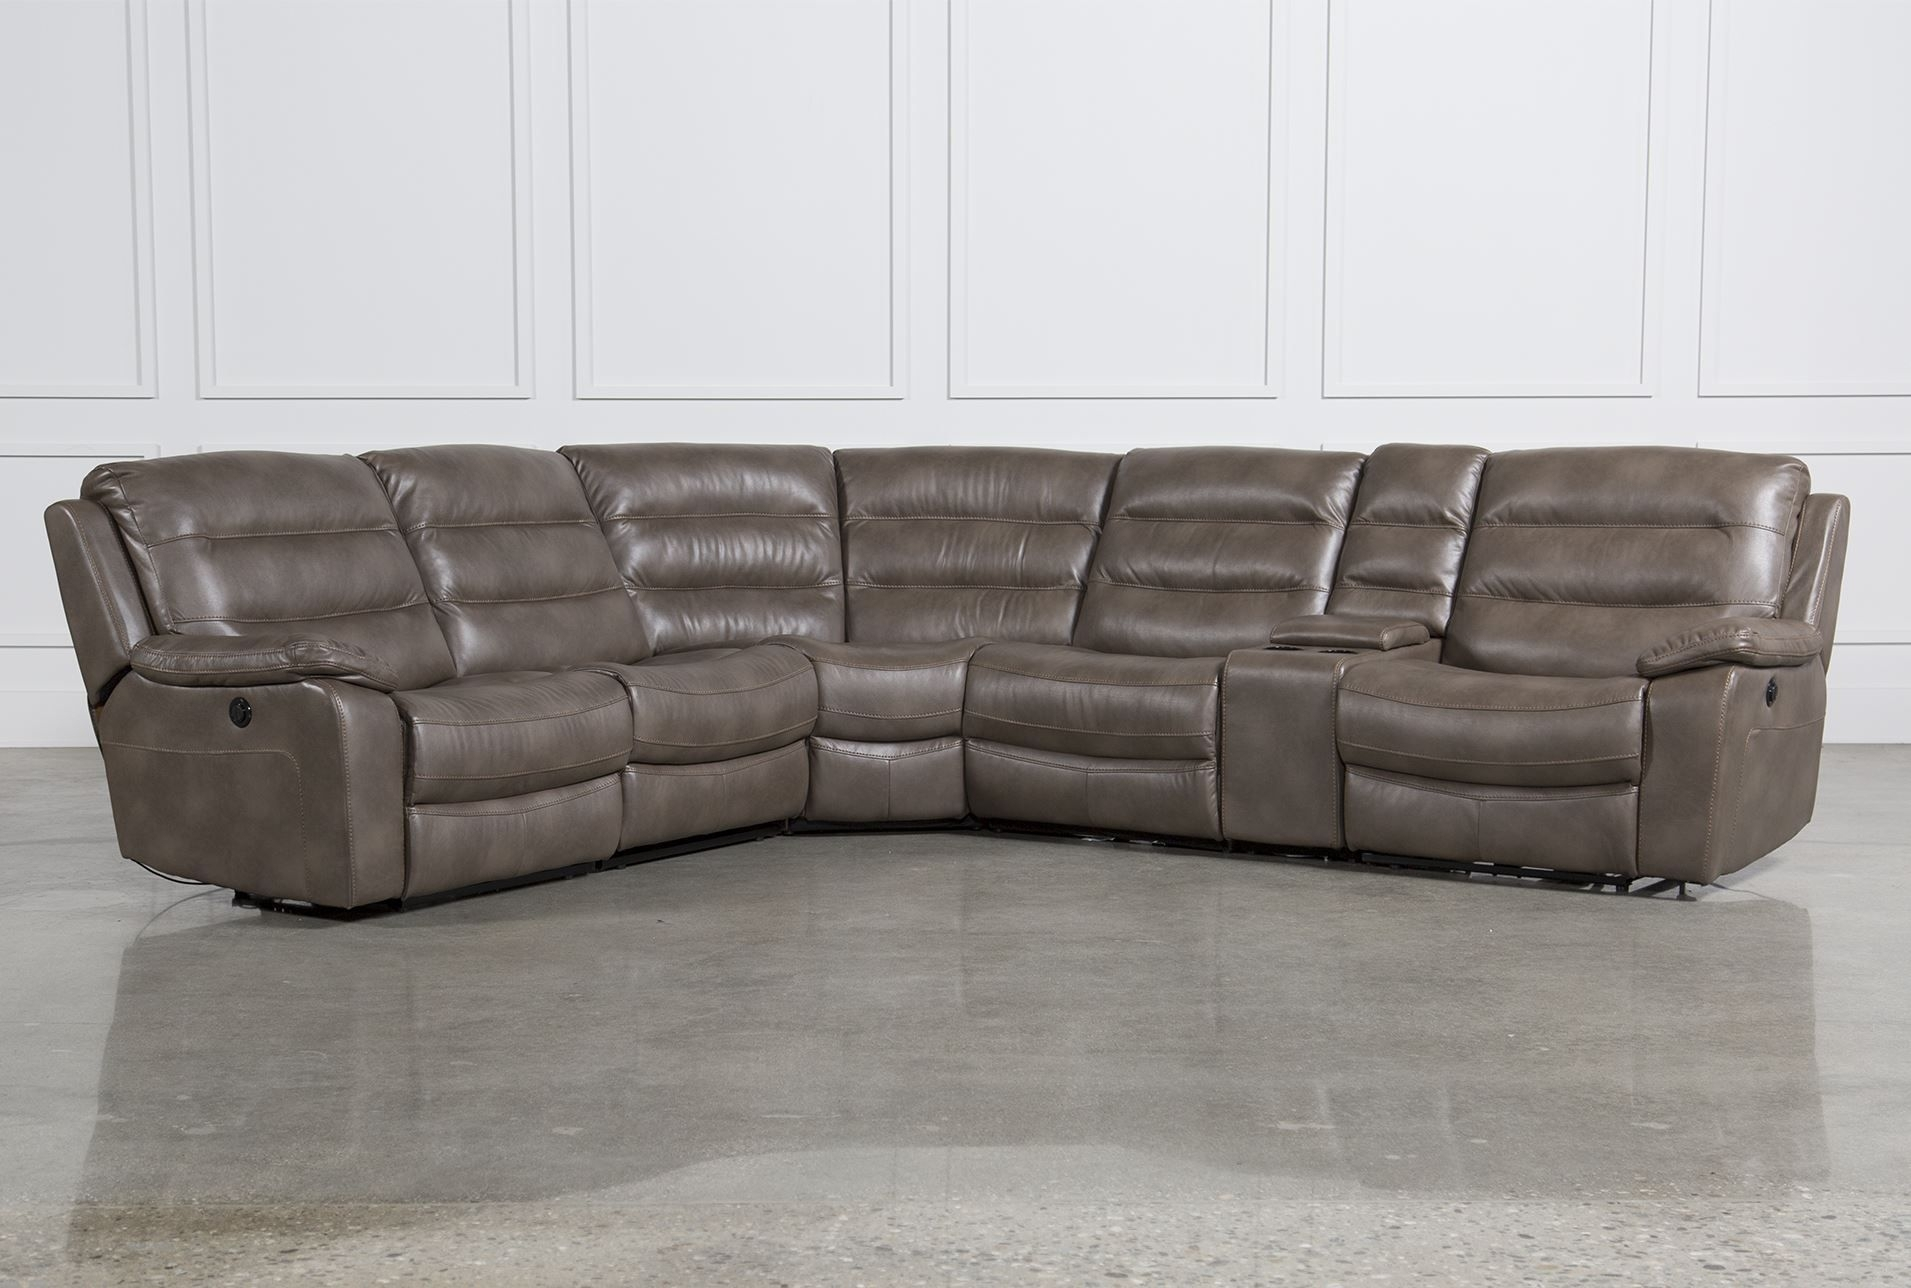 Lachlan 6 Piece Sectional | Home Sweet Home | Pinterest Intended For Kristen Silver Grey 6 Piece Power Reclining Sectionals (Image 11 of 25)